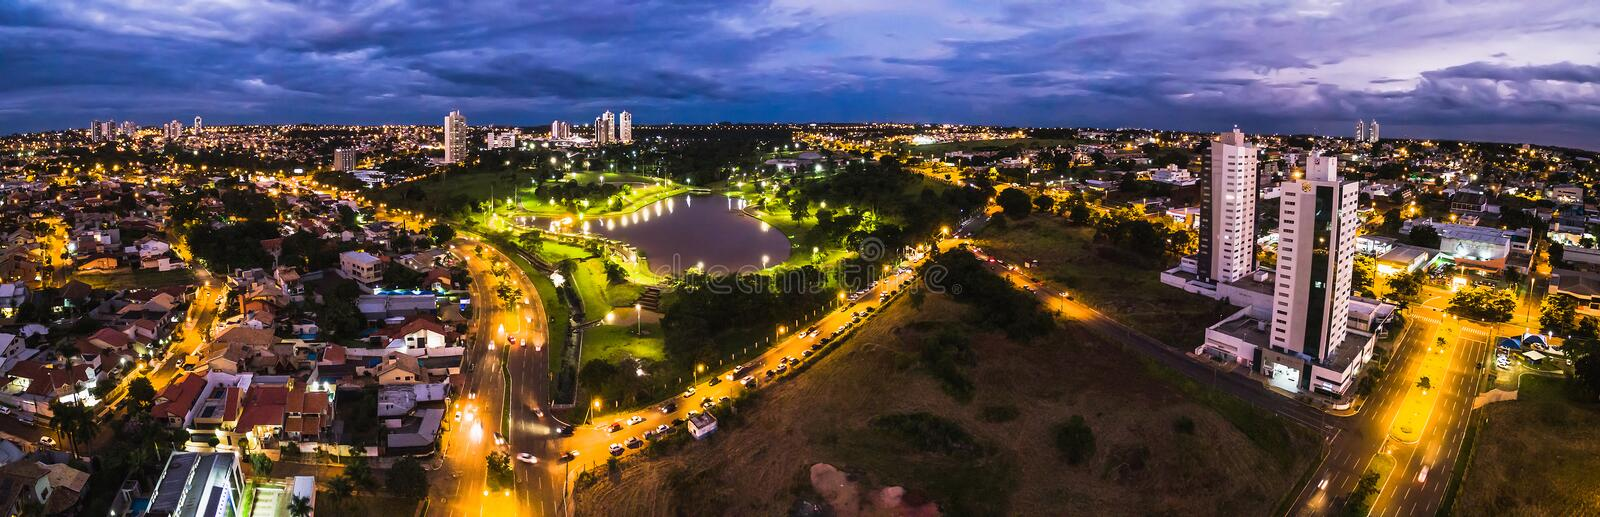 Aerial view from Parque das Nacoes Indigenas at night stock images